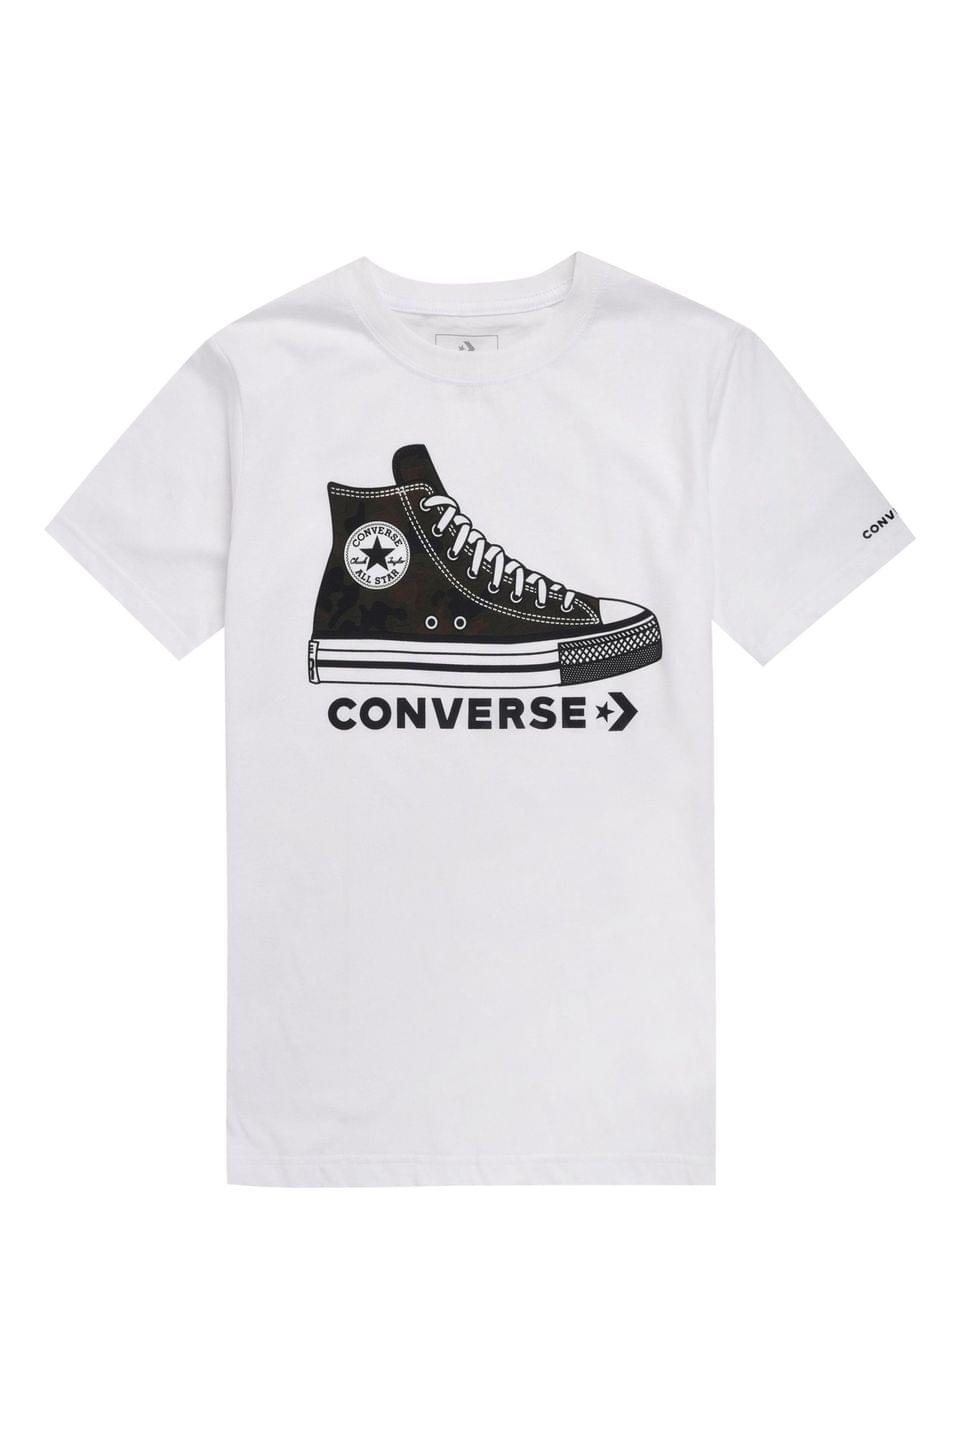 Boy's Converse Boys White Printed Sneaker T-Shirt